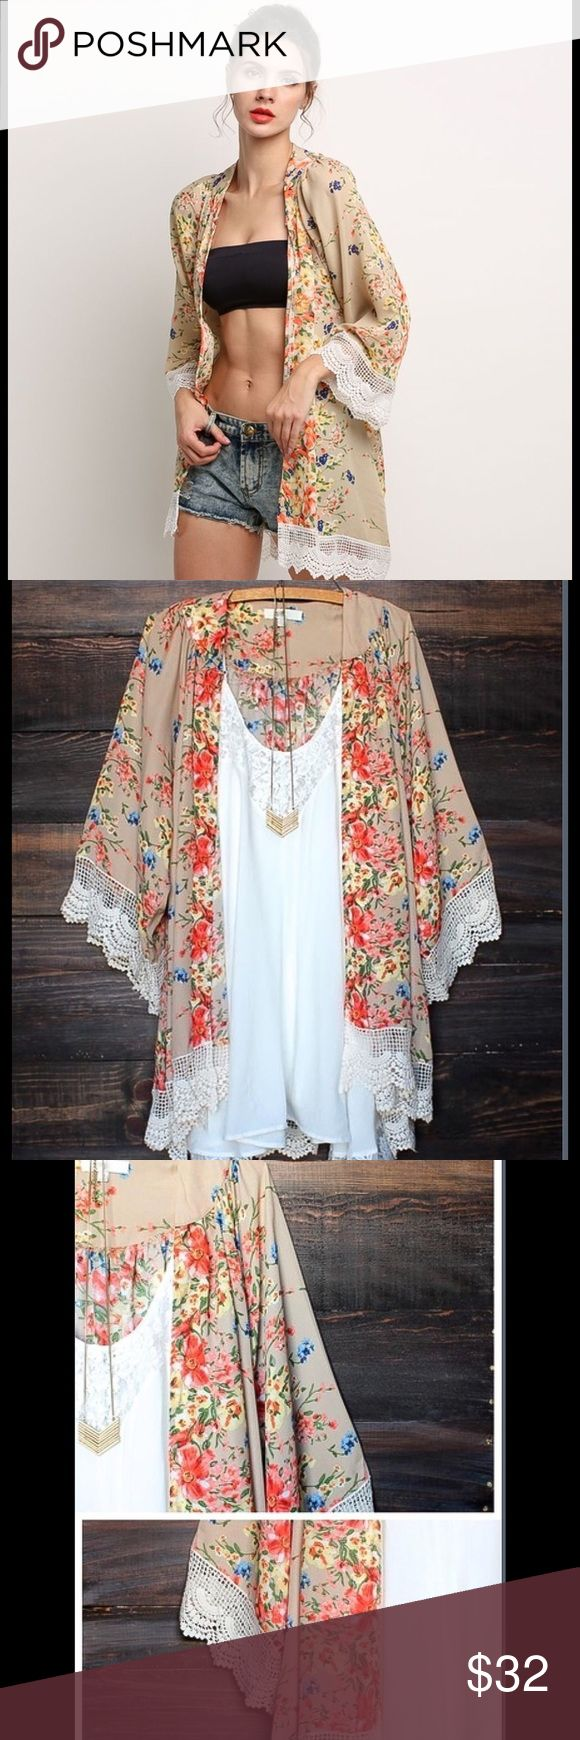 NWT Floral Print Loose Chiffon Cardigan Top Floral Print Chiffon Cardigan Top.  Material: Chiffon and Lace, Multicolor Floral Print.  So versatile for the Spring and Summer!!  Lovely!!  NWT!! Tops